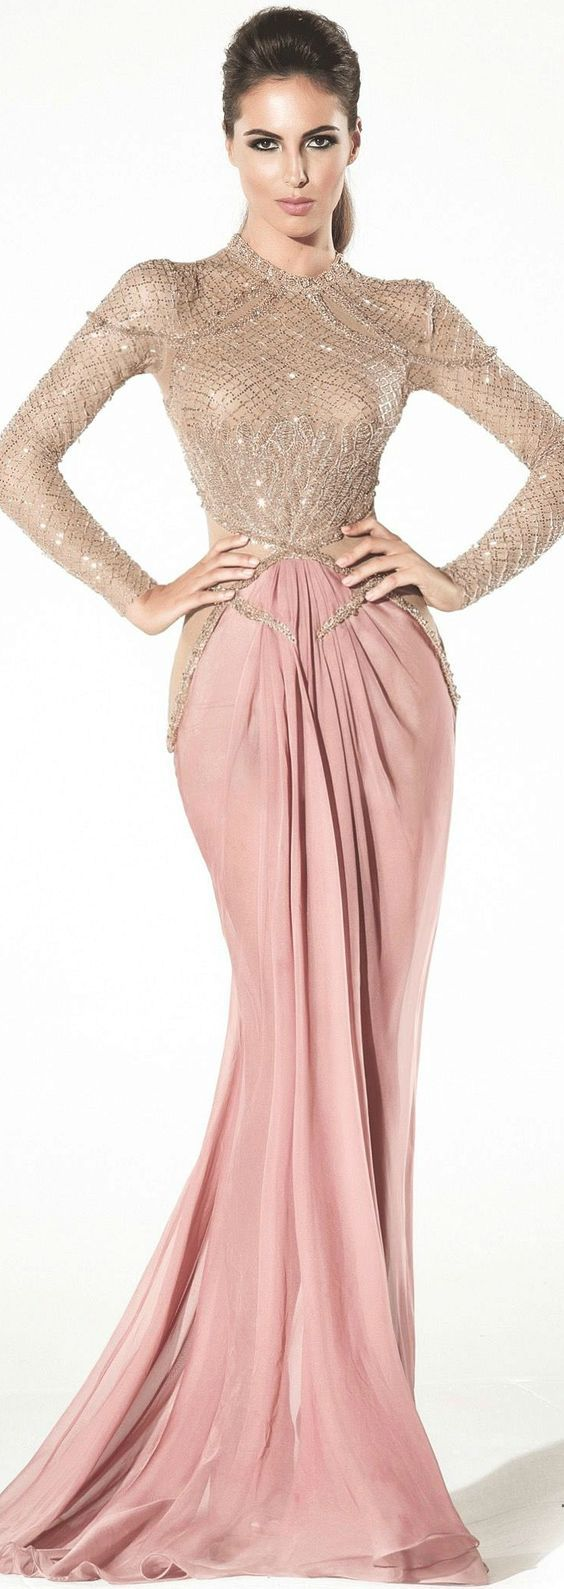 Charbel zoe haute couture spring wedding gowns pinterest